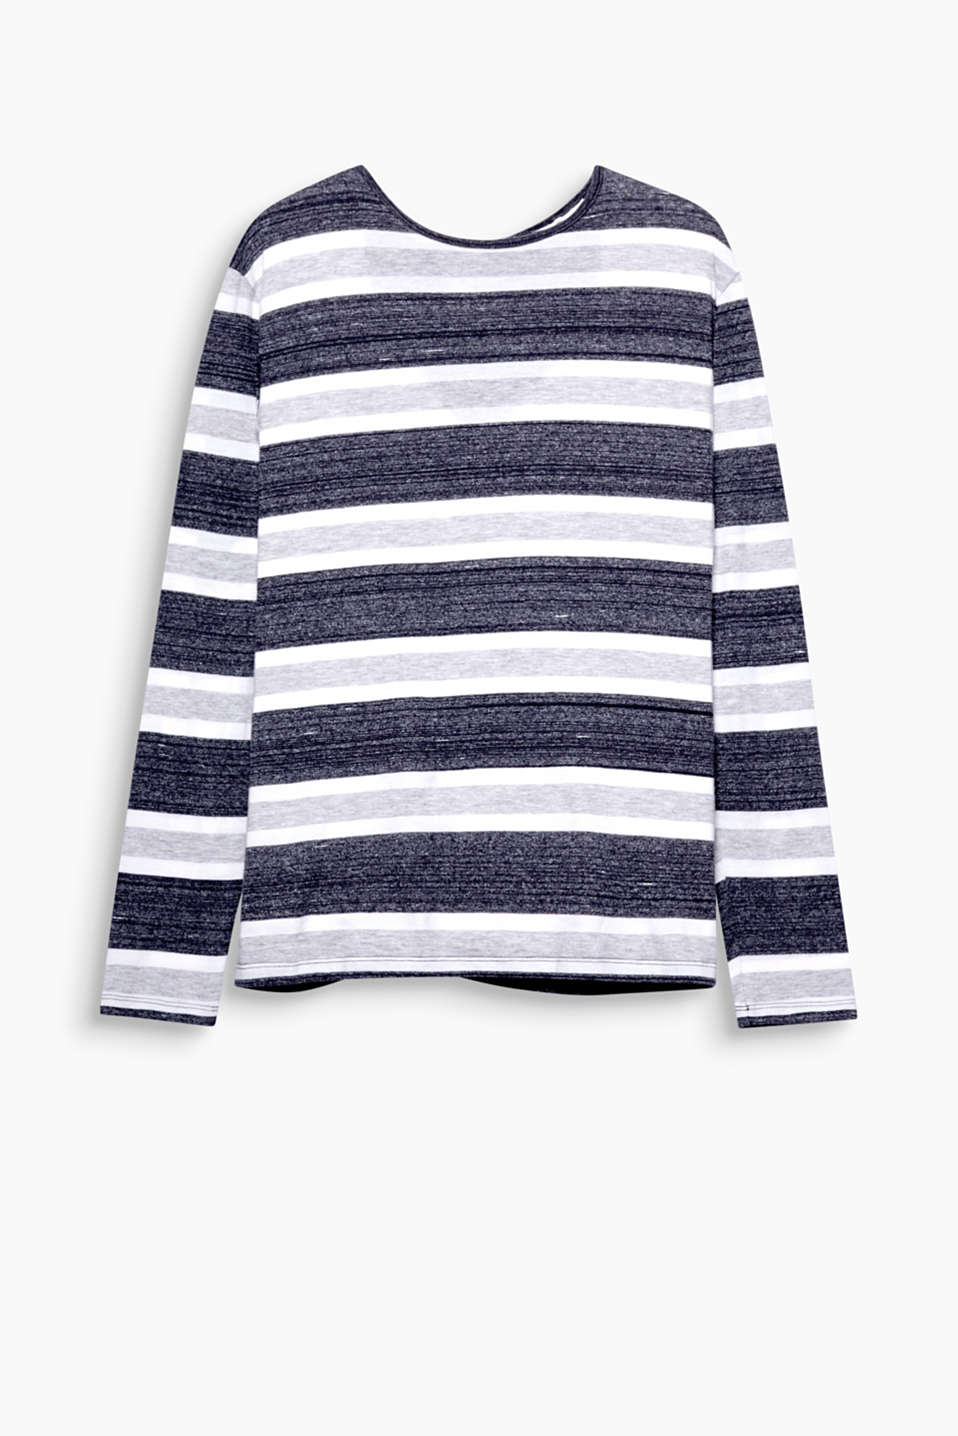 Ravishingly retro stripes! This long sleeve jersey top stuns with its nautical look